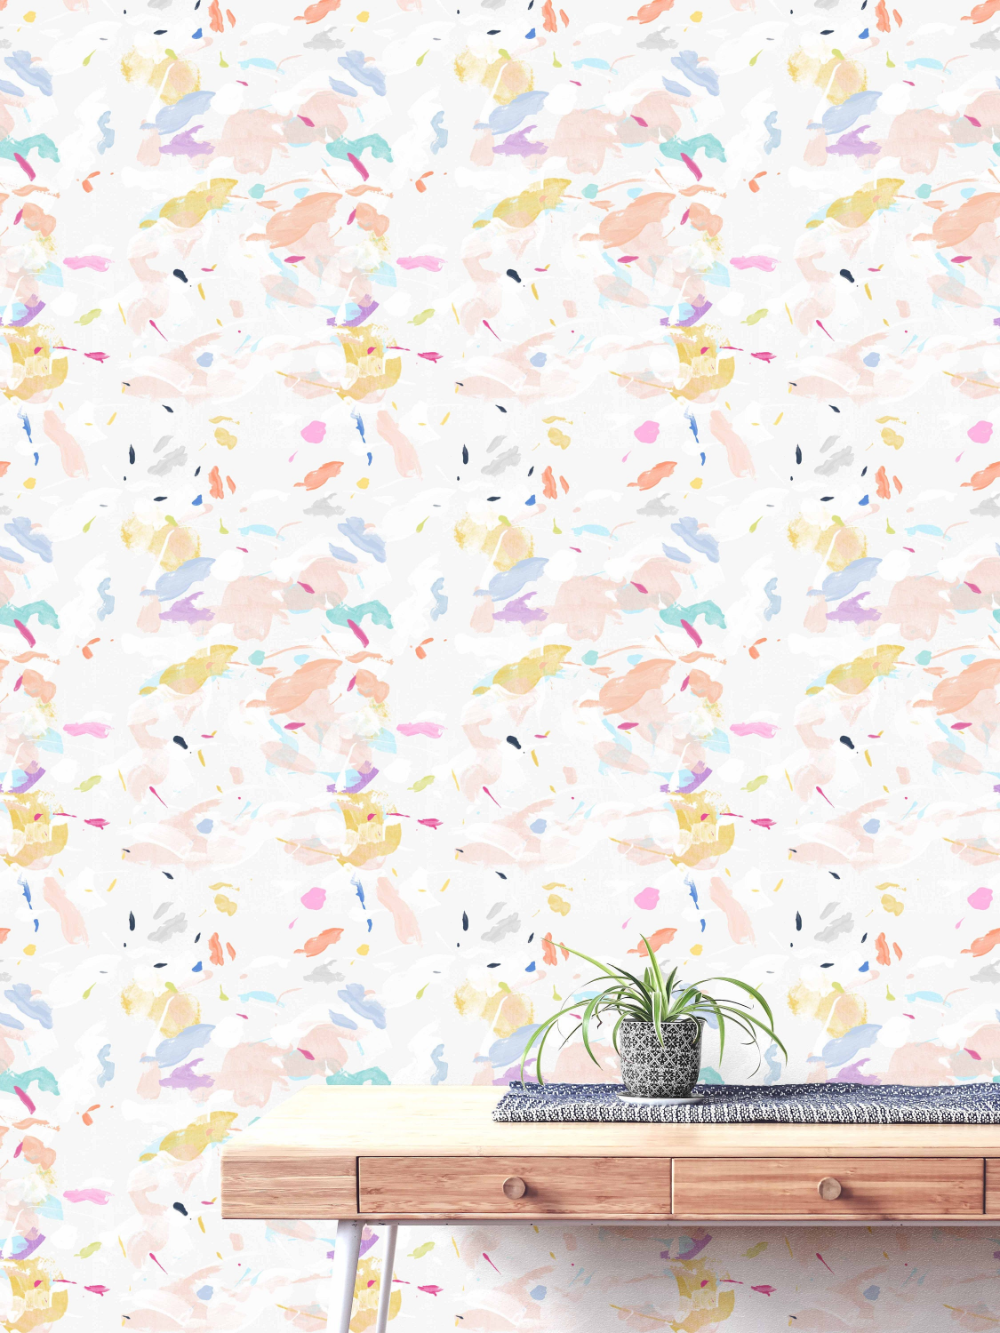 Colourful Abstract Wallpaper Peel And Stick Or Pre Pasted Wallpaper Kids Wallpaper Removable Wallpaper Nurs Abstract Wallpaper Nursery Wallpaper Wallpaper